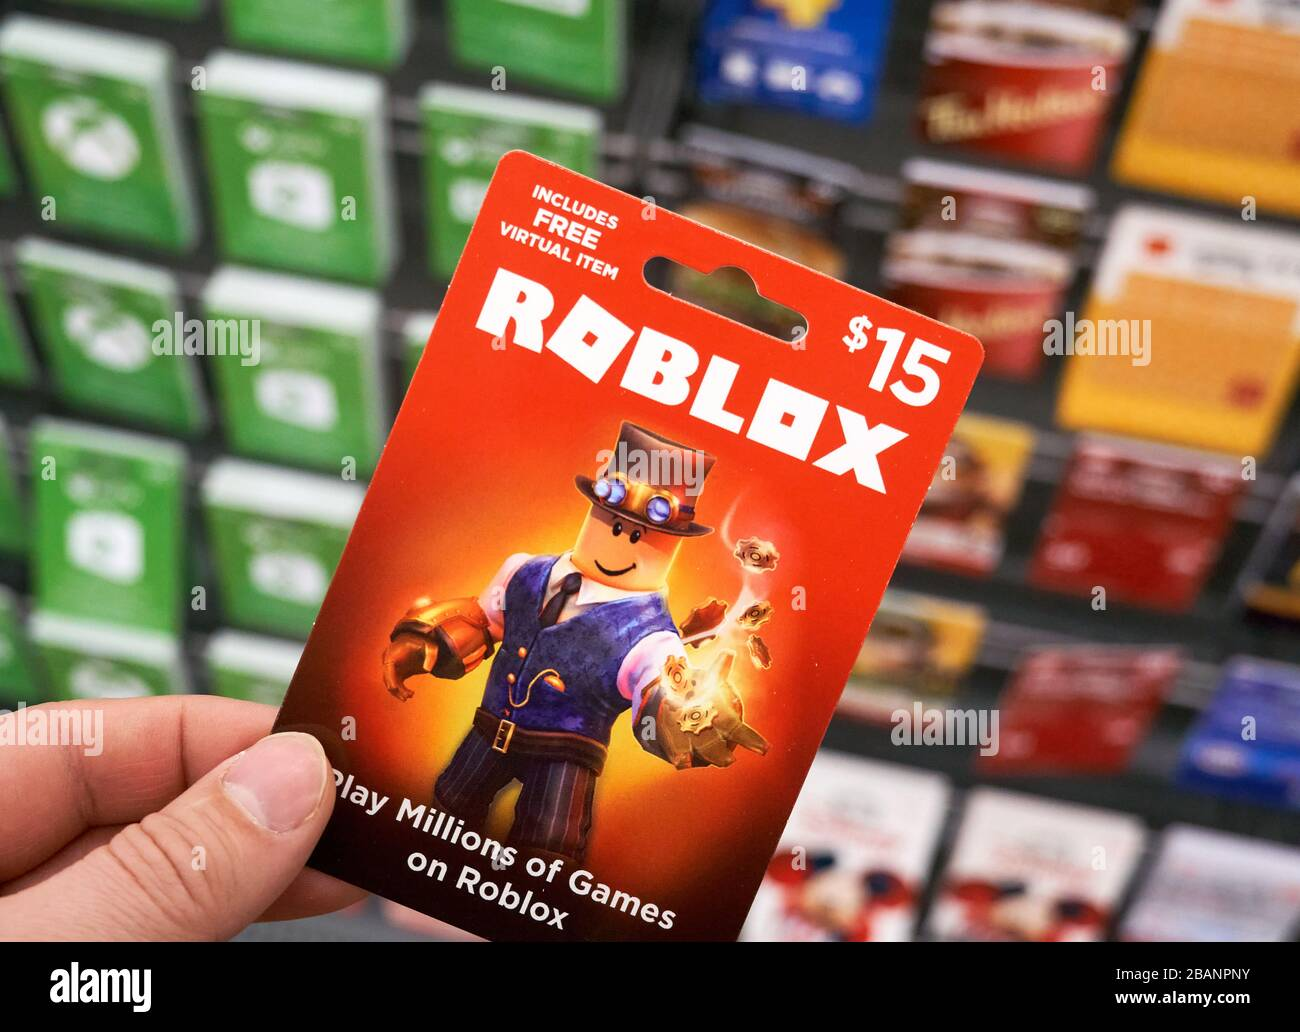 Montreal Canada March 22 2020 Roblox Gift Card In A Hand Over